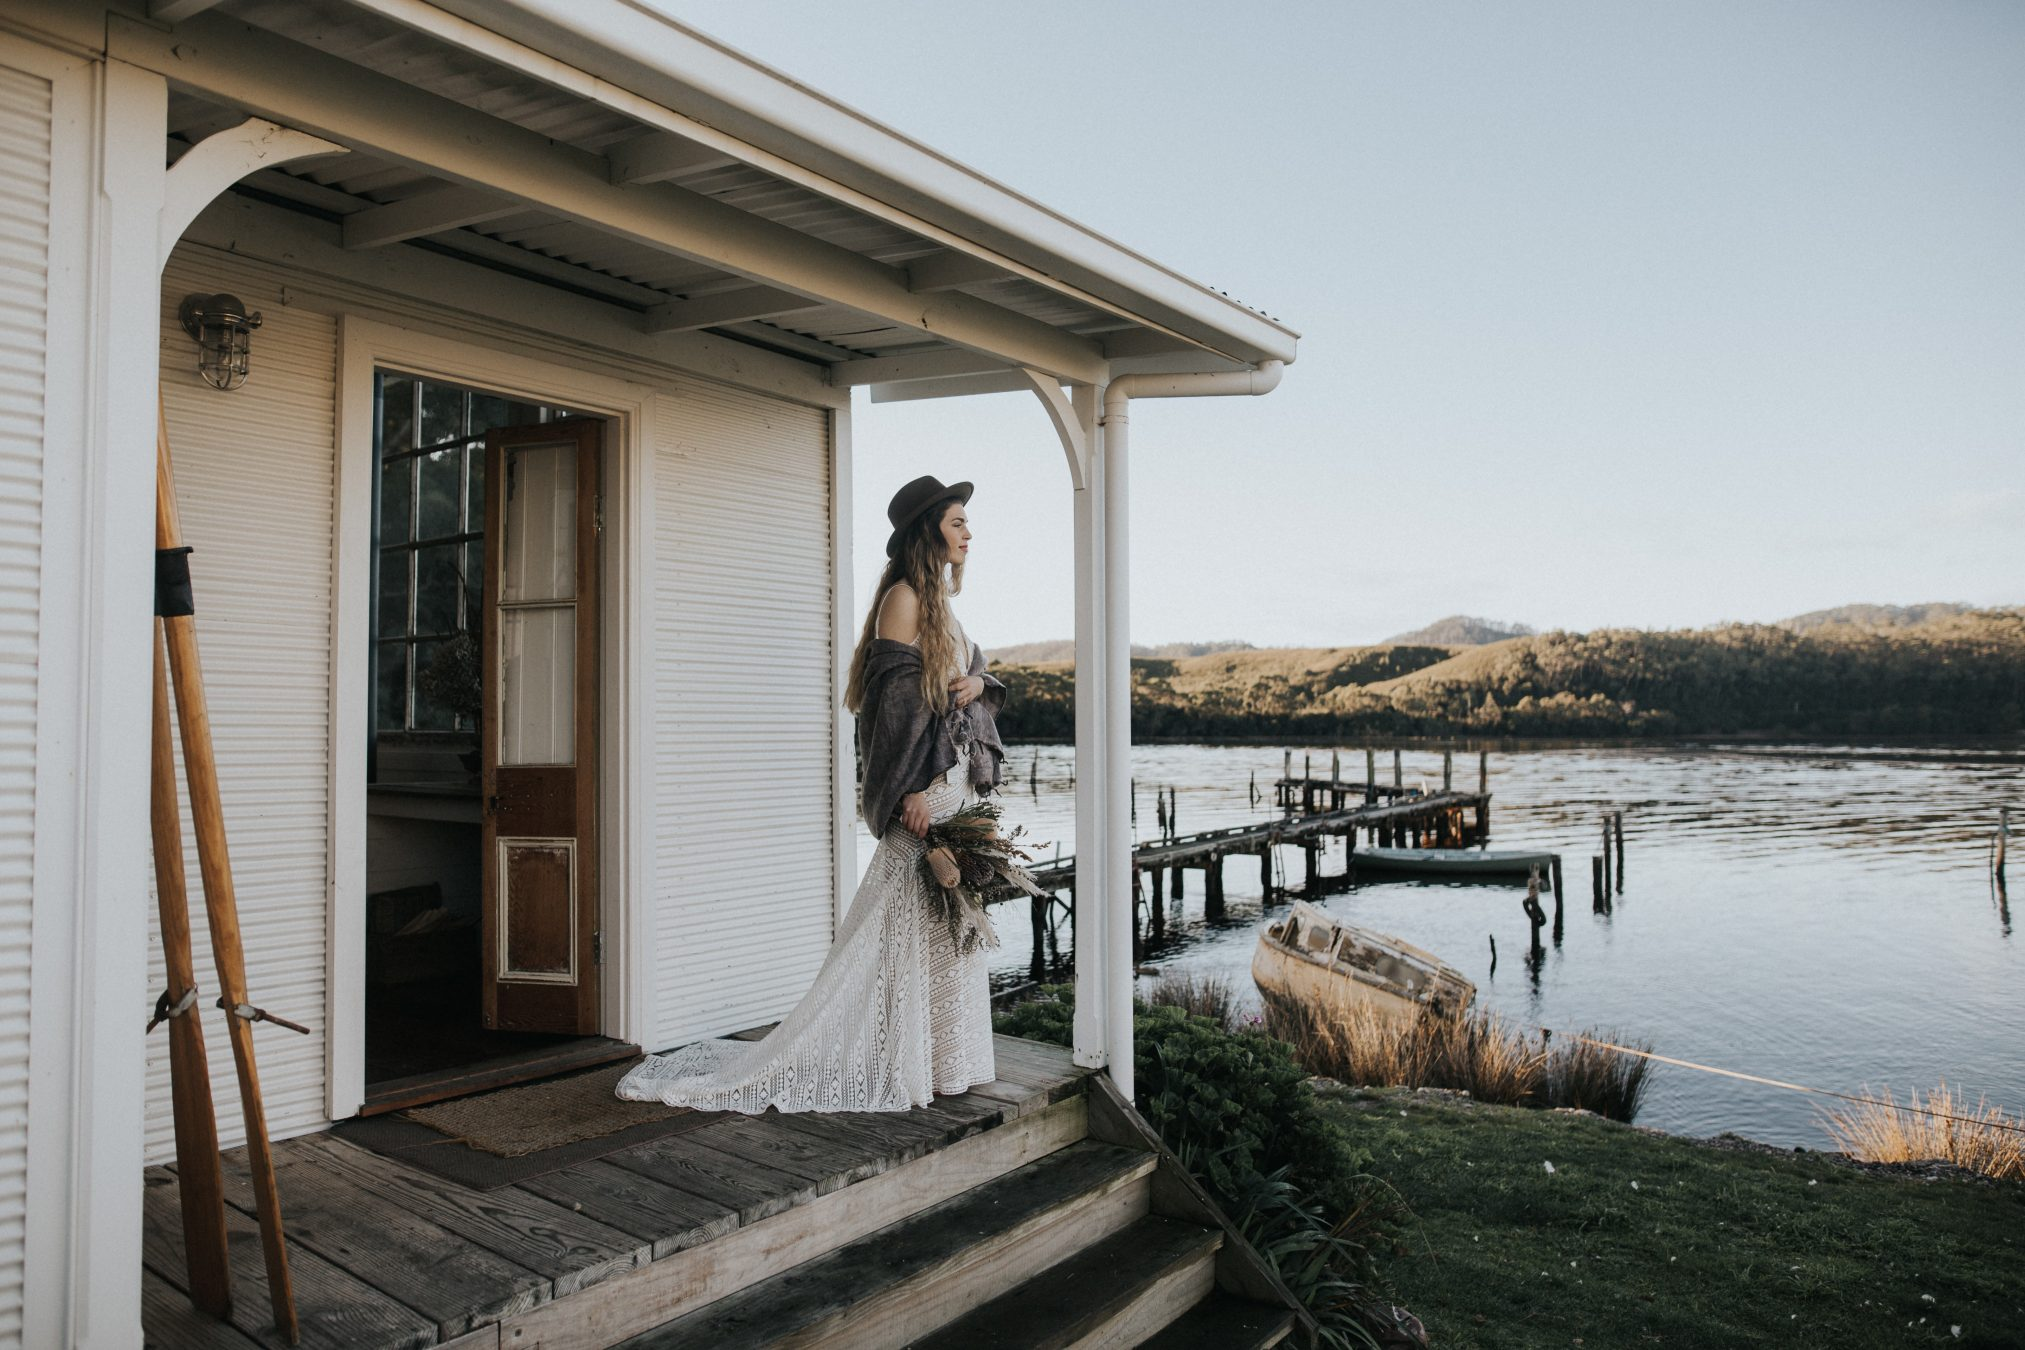 Bride standing by water outside of rustic house - Captains Rest Tasmania